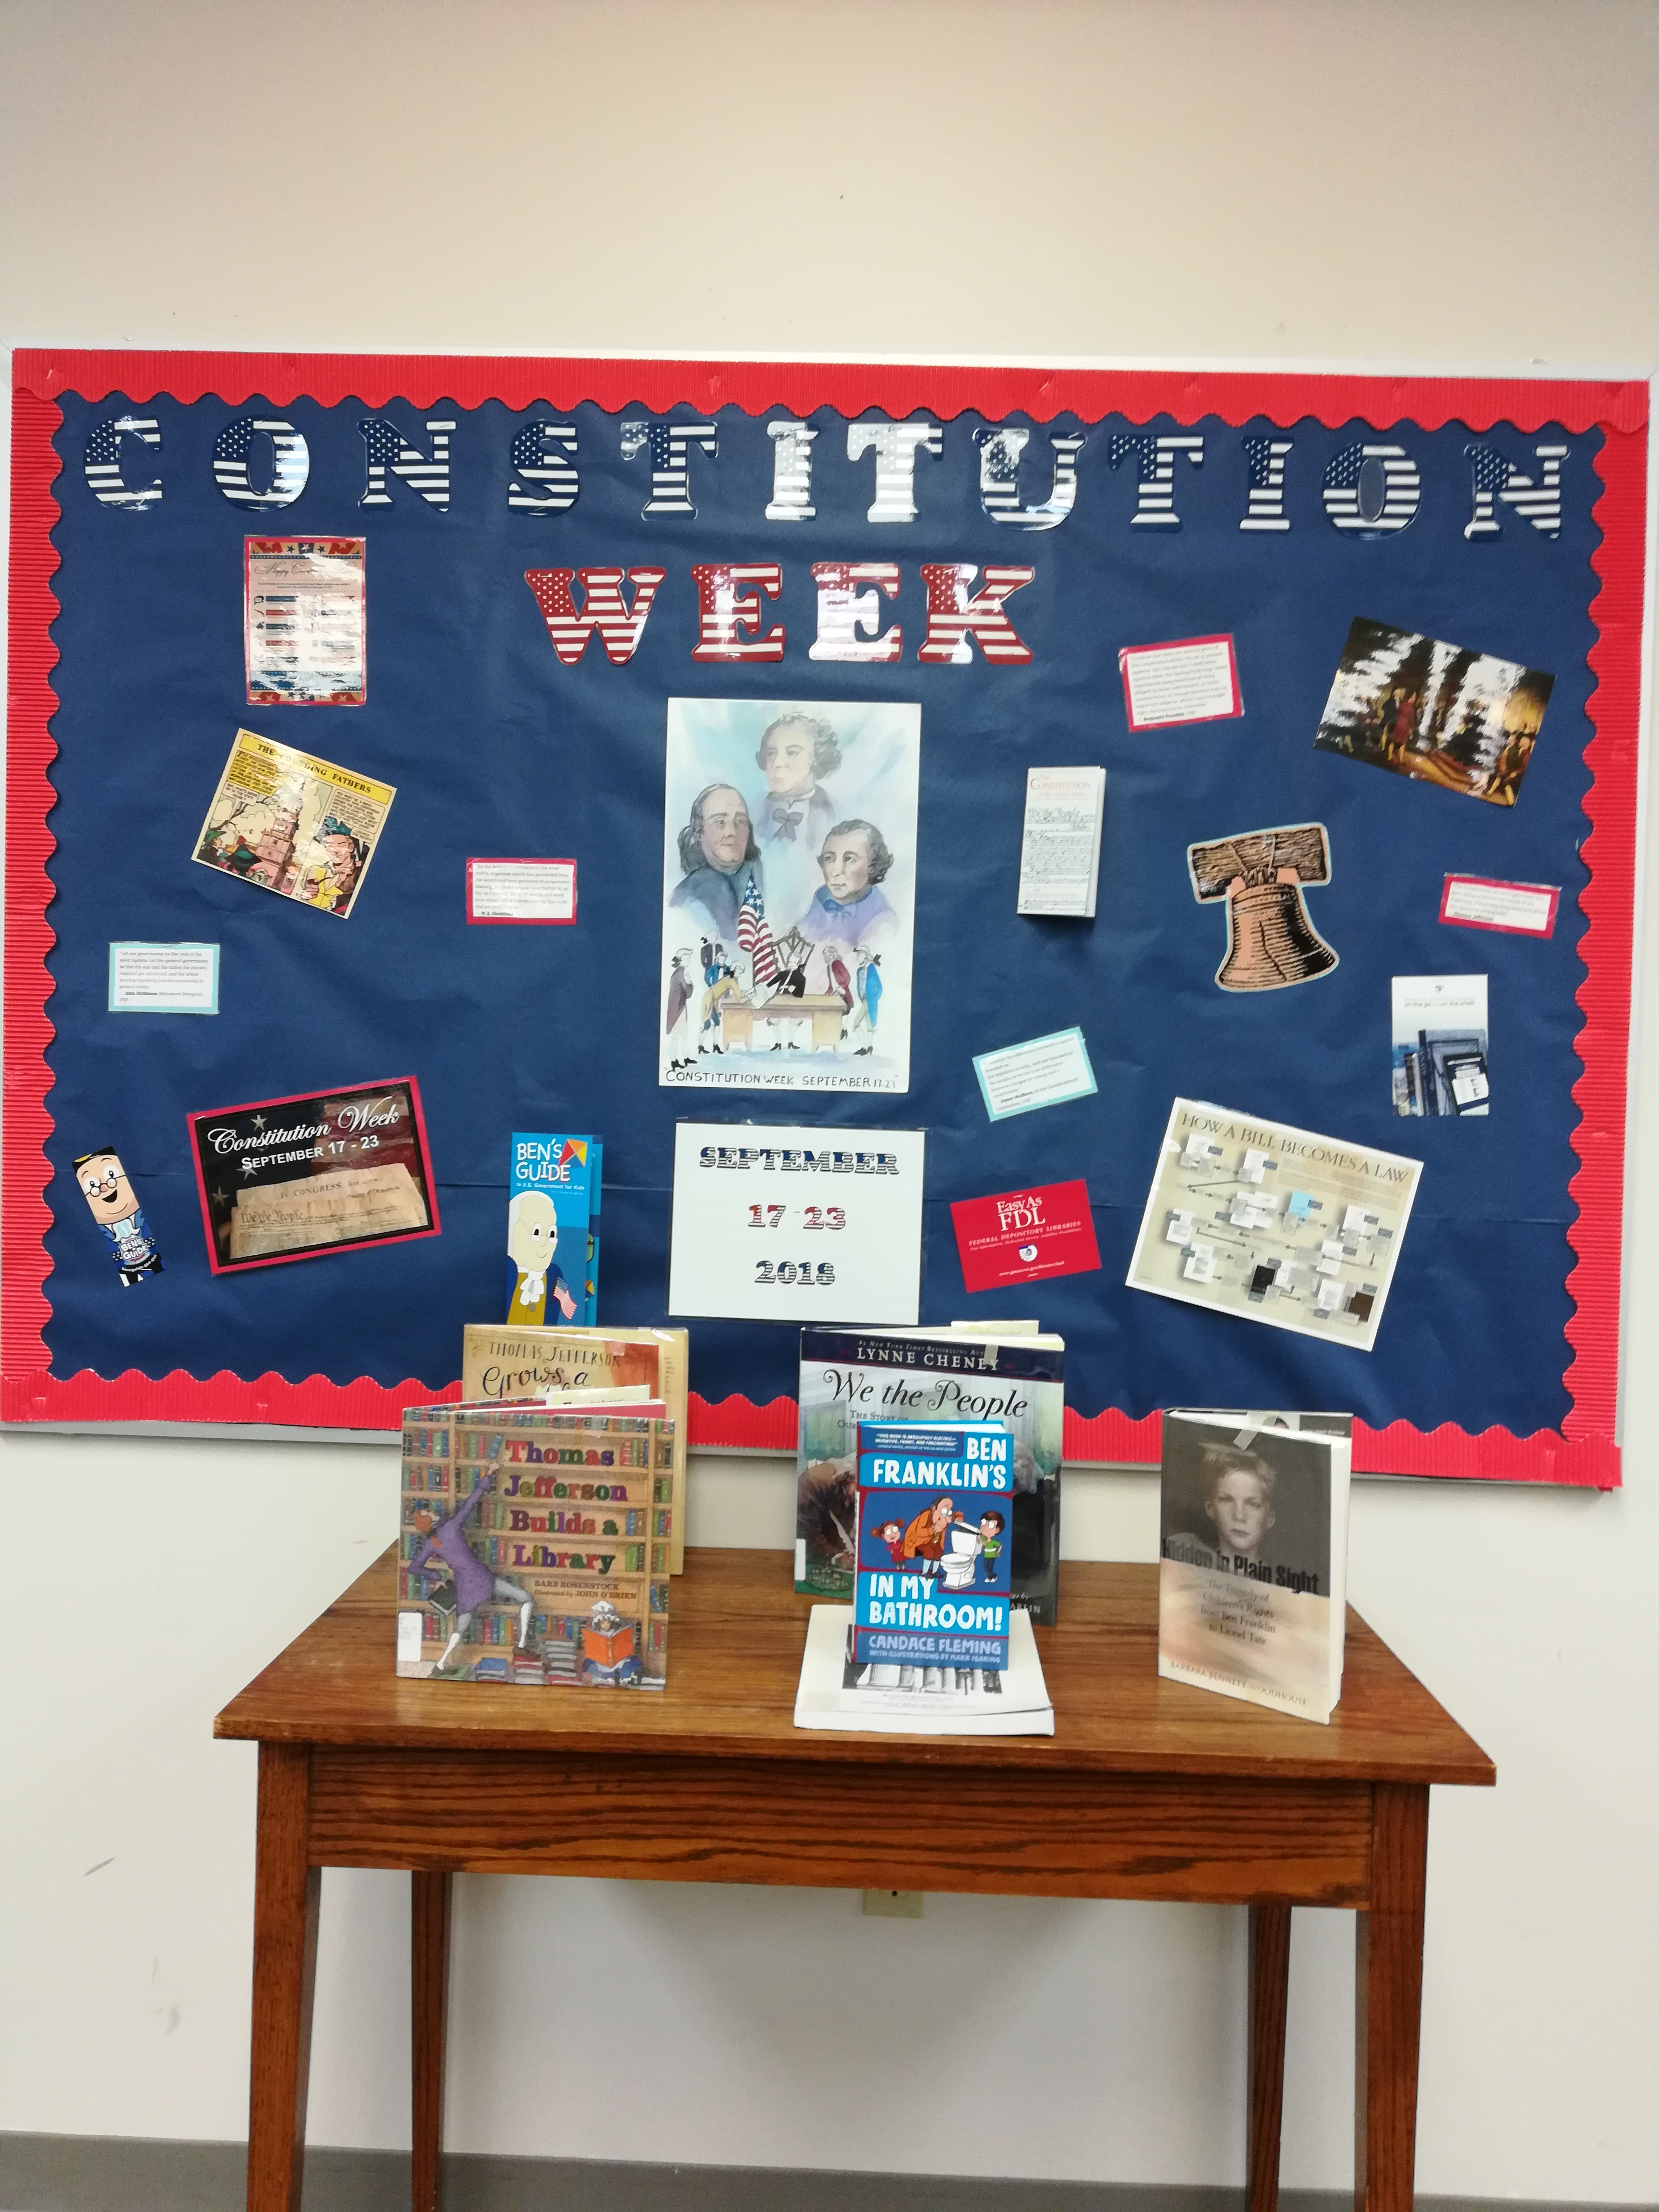 Constitution Week Board and display with books from our collection. Red White and blue lettering on a navy background